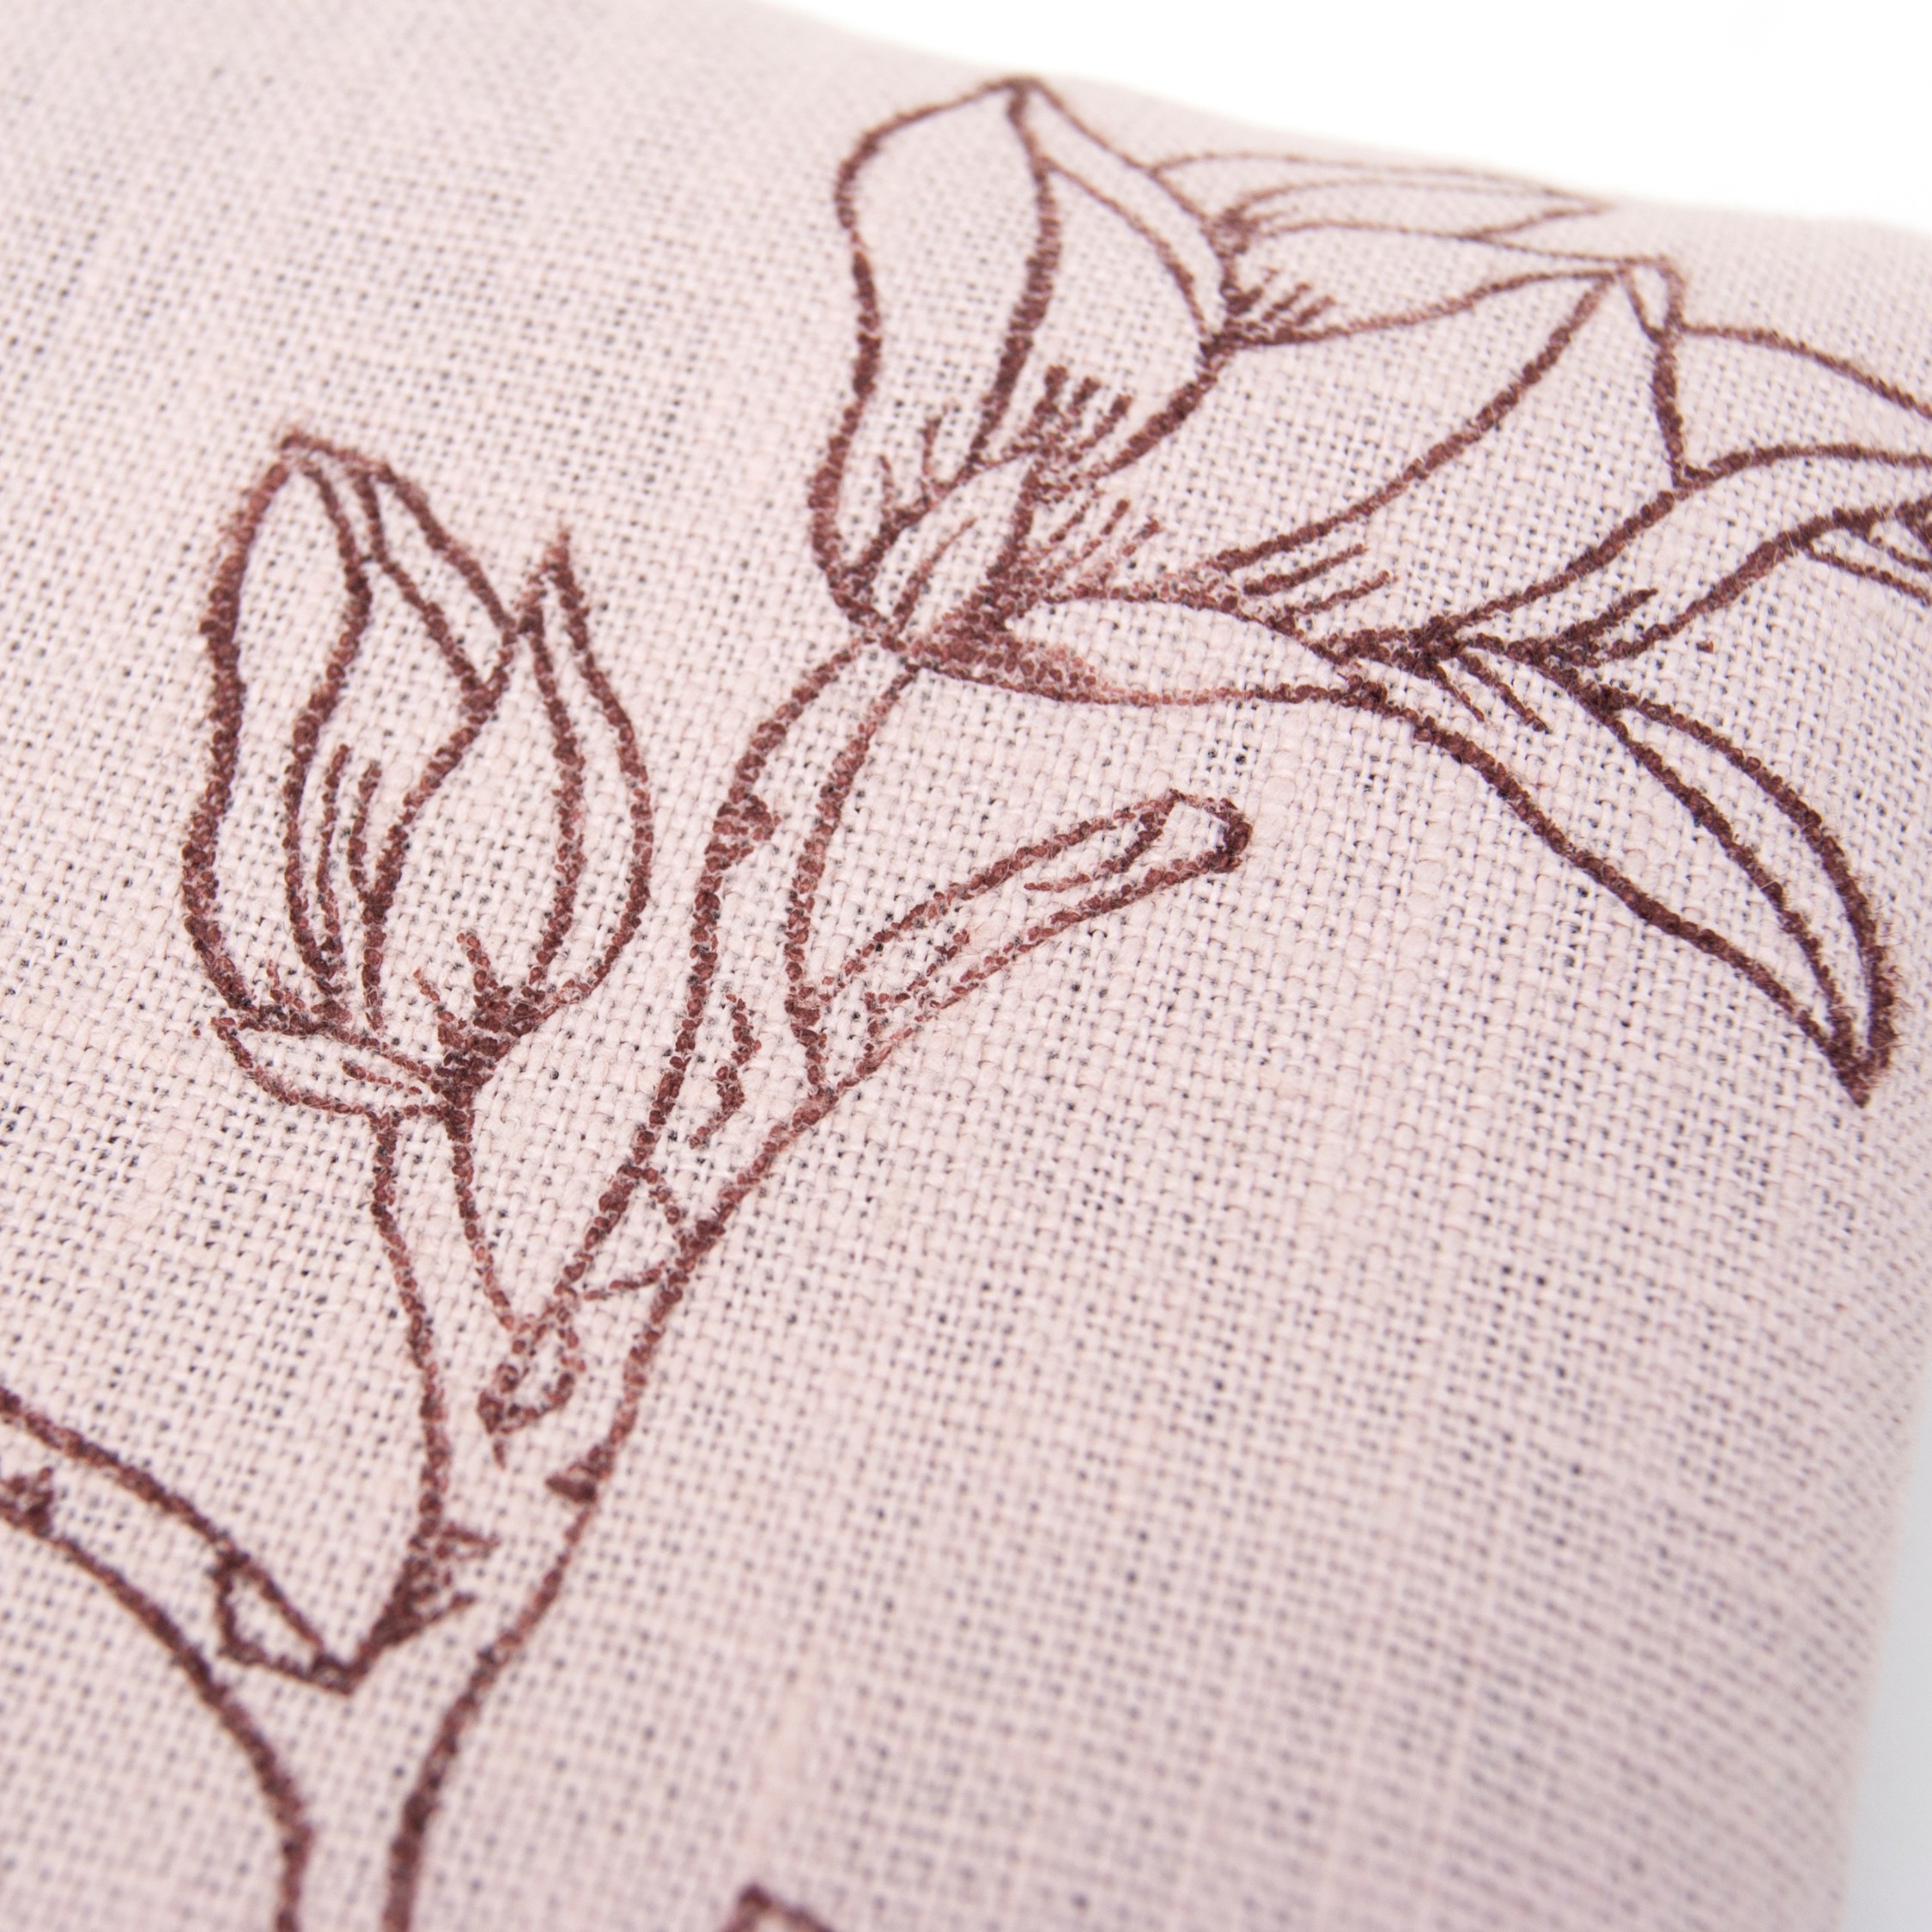 Print up close of the Magnolia singing bowl cushion by Pure Prana Label